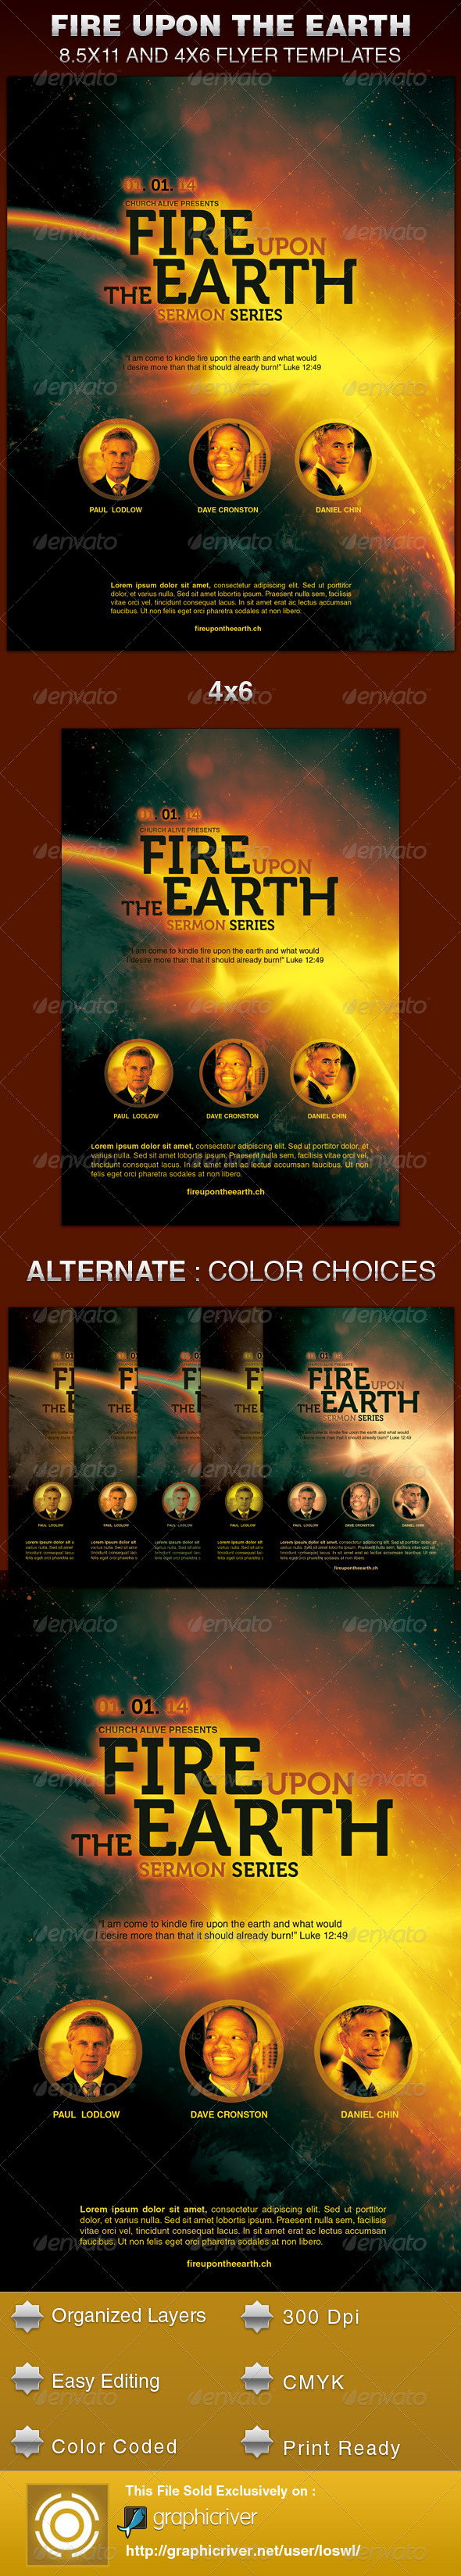 GraphicRiver Fire Upon the Earth Church Flyer Template 6192551